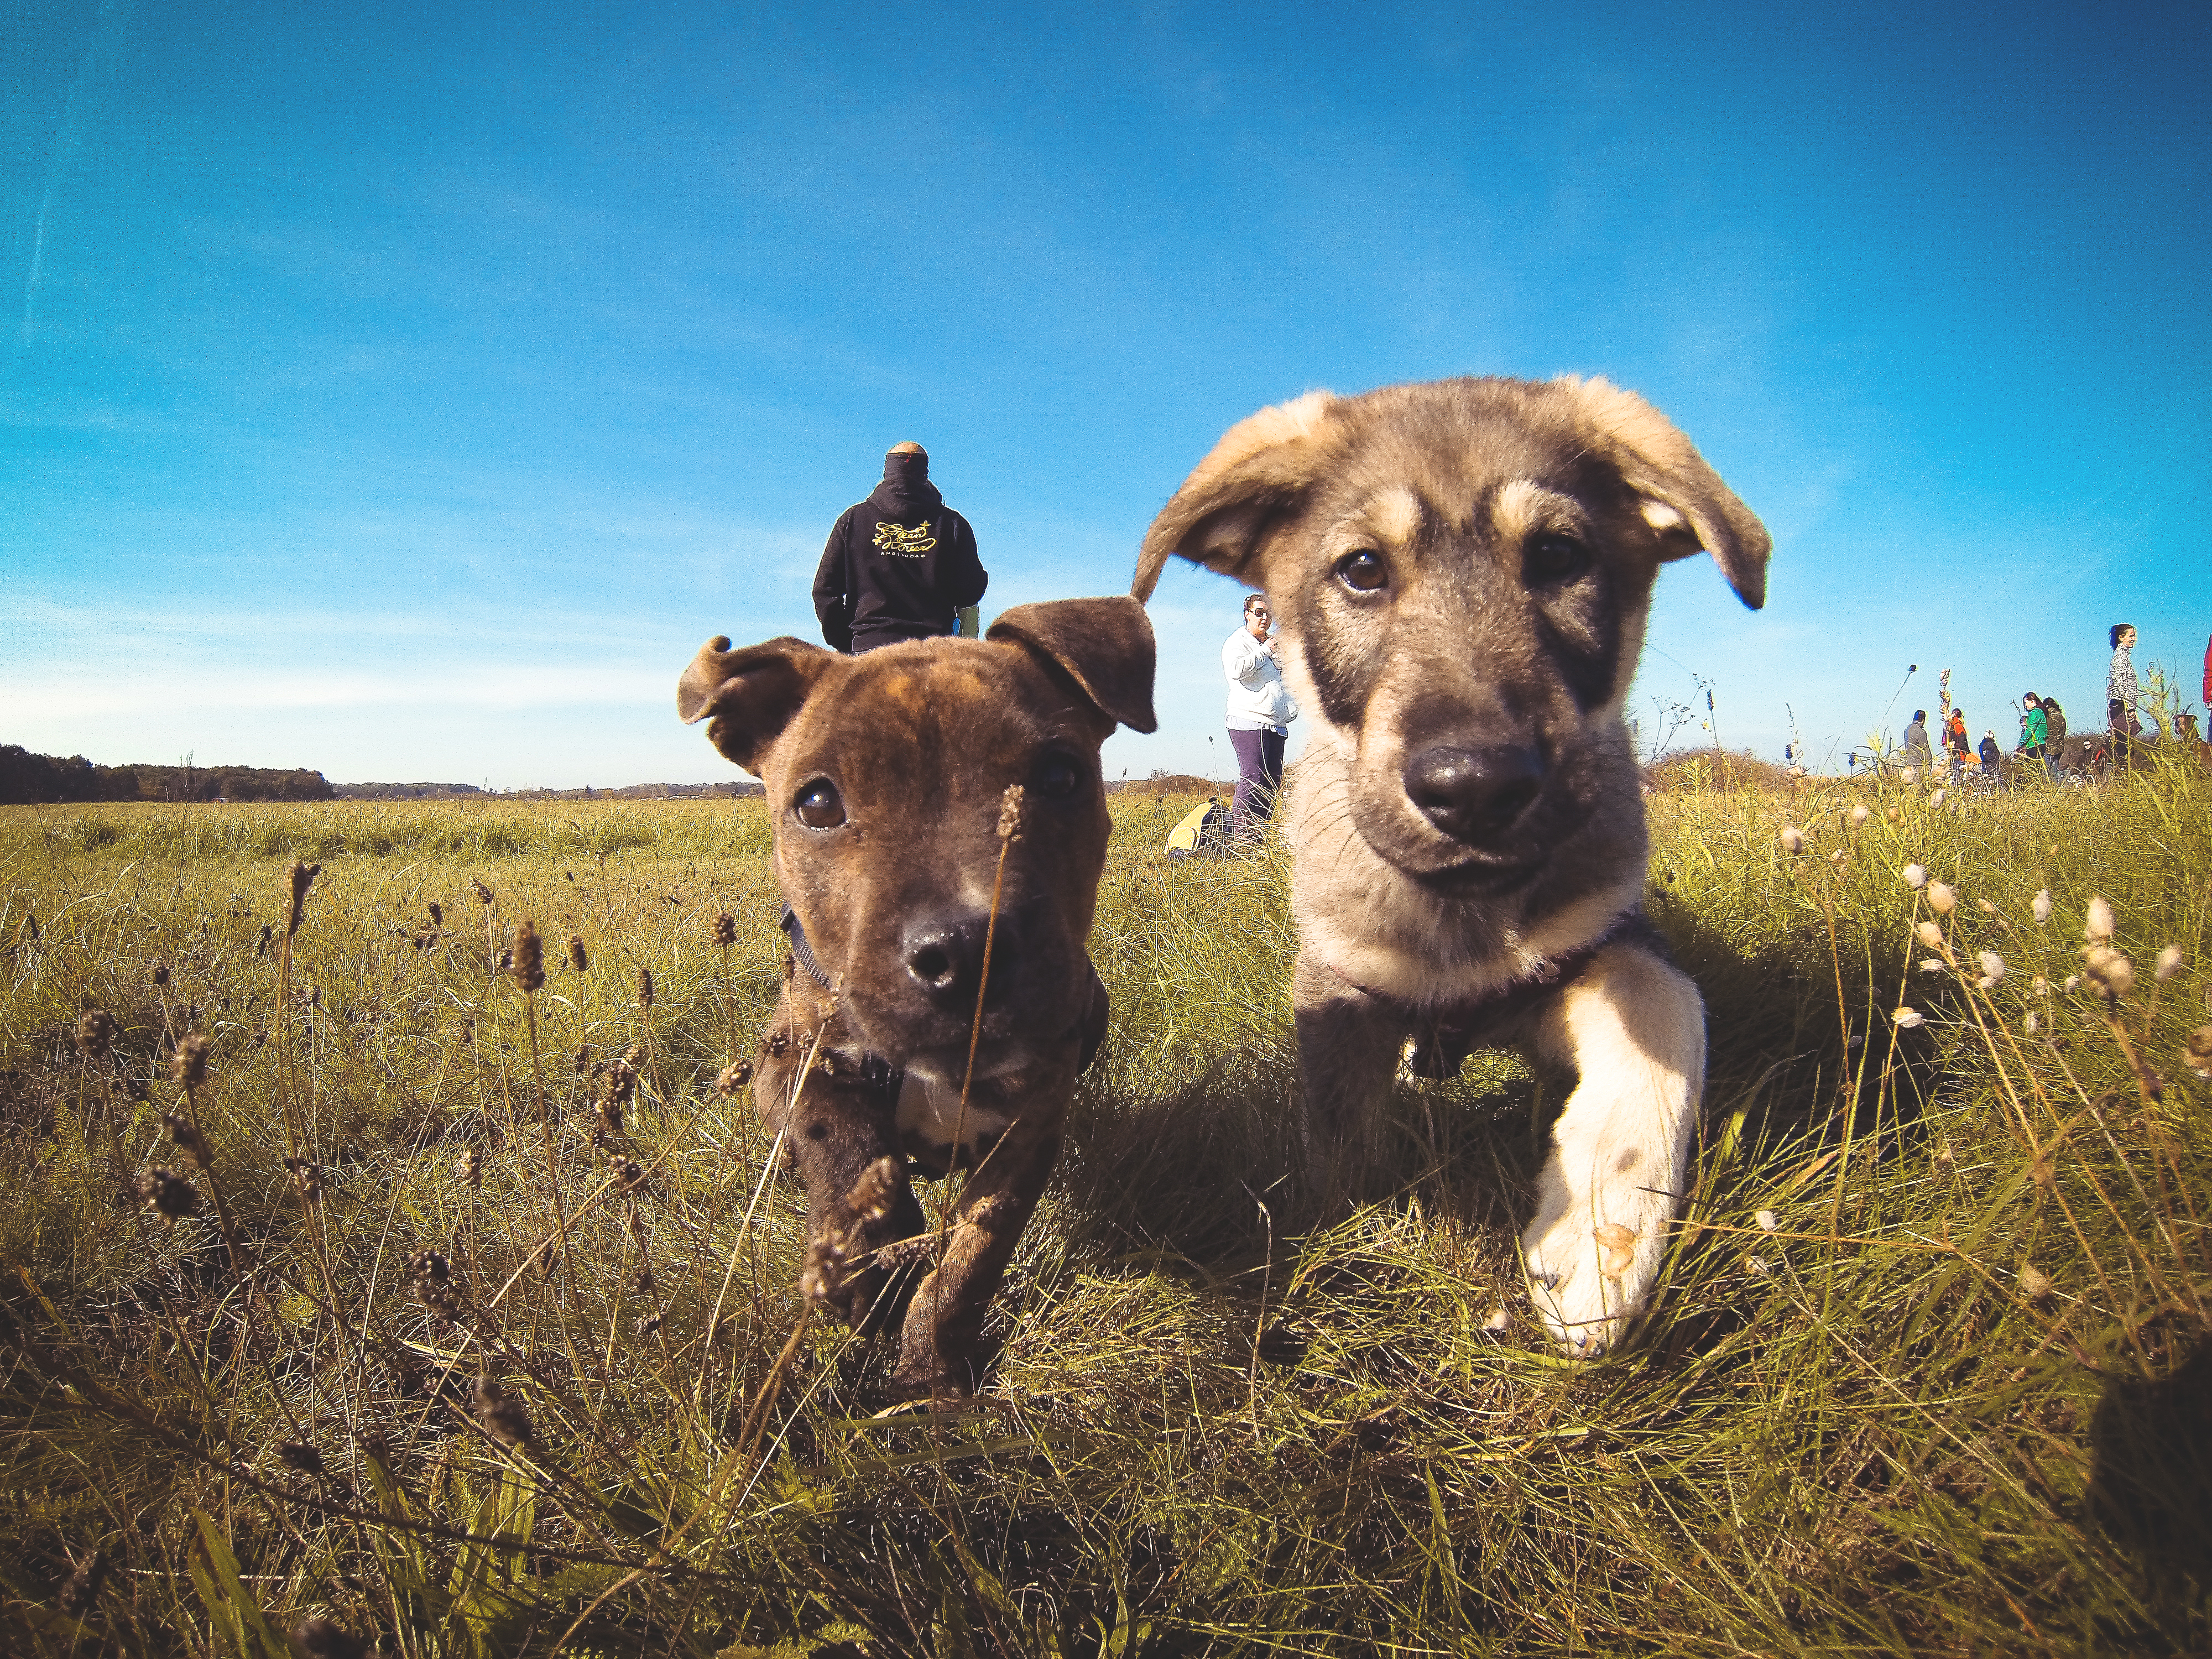 Qgiv's Top 3 Animal Shelter Fundraising Tips